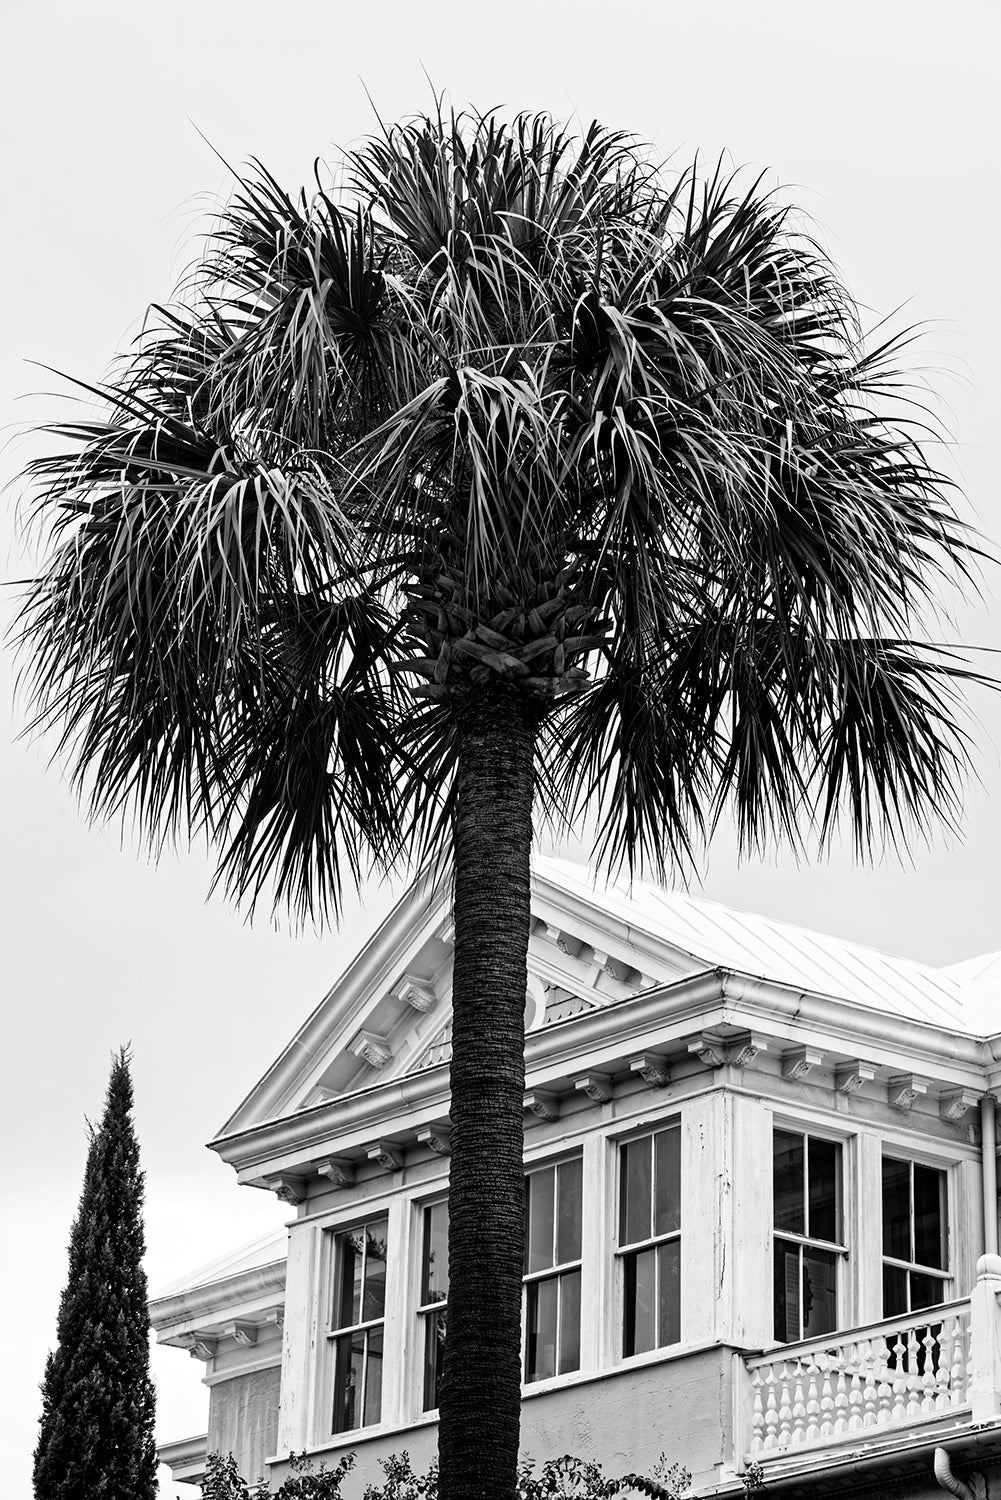 Charleston Historic House with Palm Tree - Black and White Photograph by Keith Dotson. Buy a fine art print.